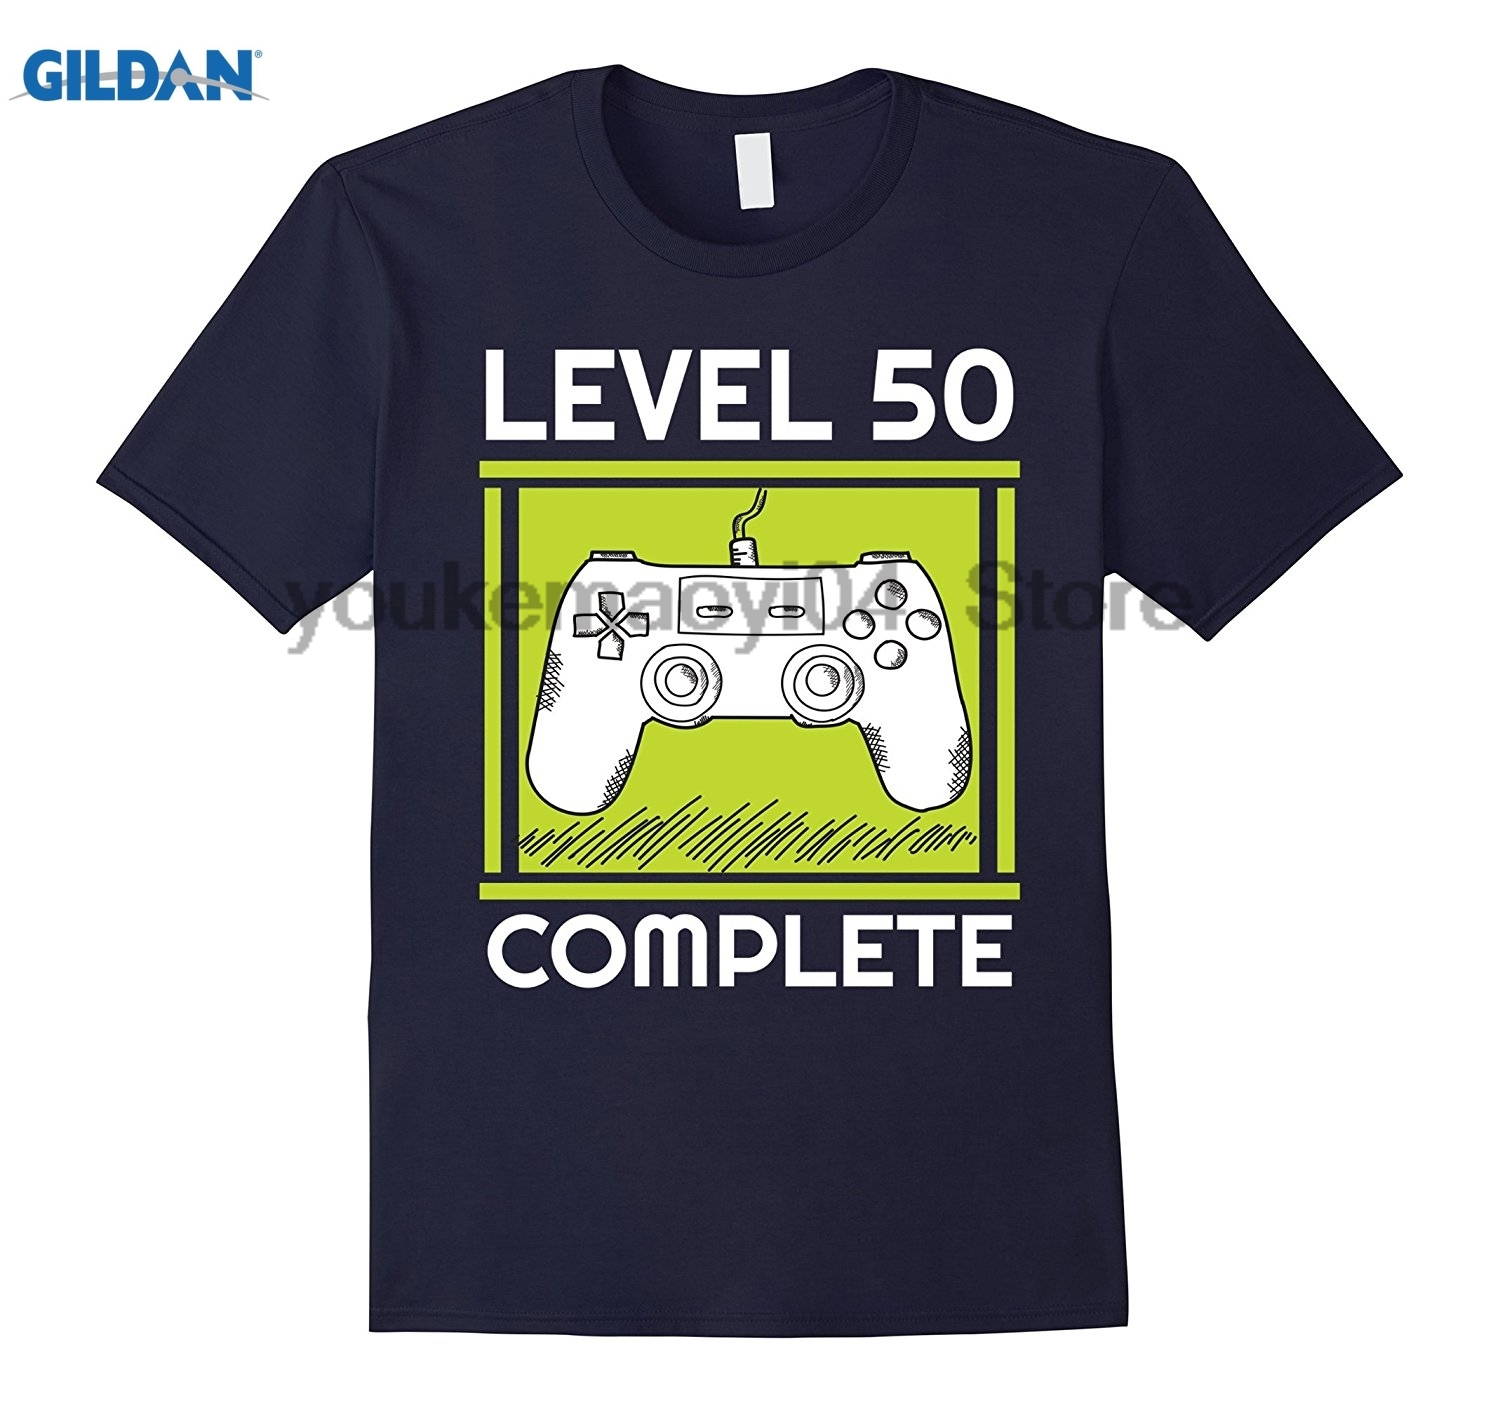 GILDAN Level 50 Complete Funny Video Games 50 Birthday Gift T-Shirt Mens personality Fashion creative pattern T-shirt